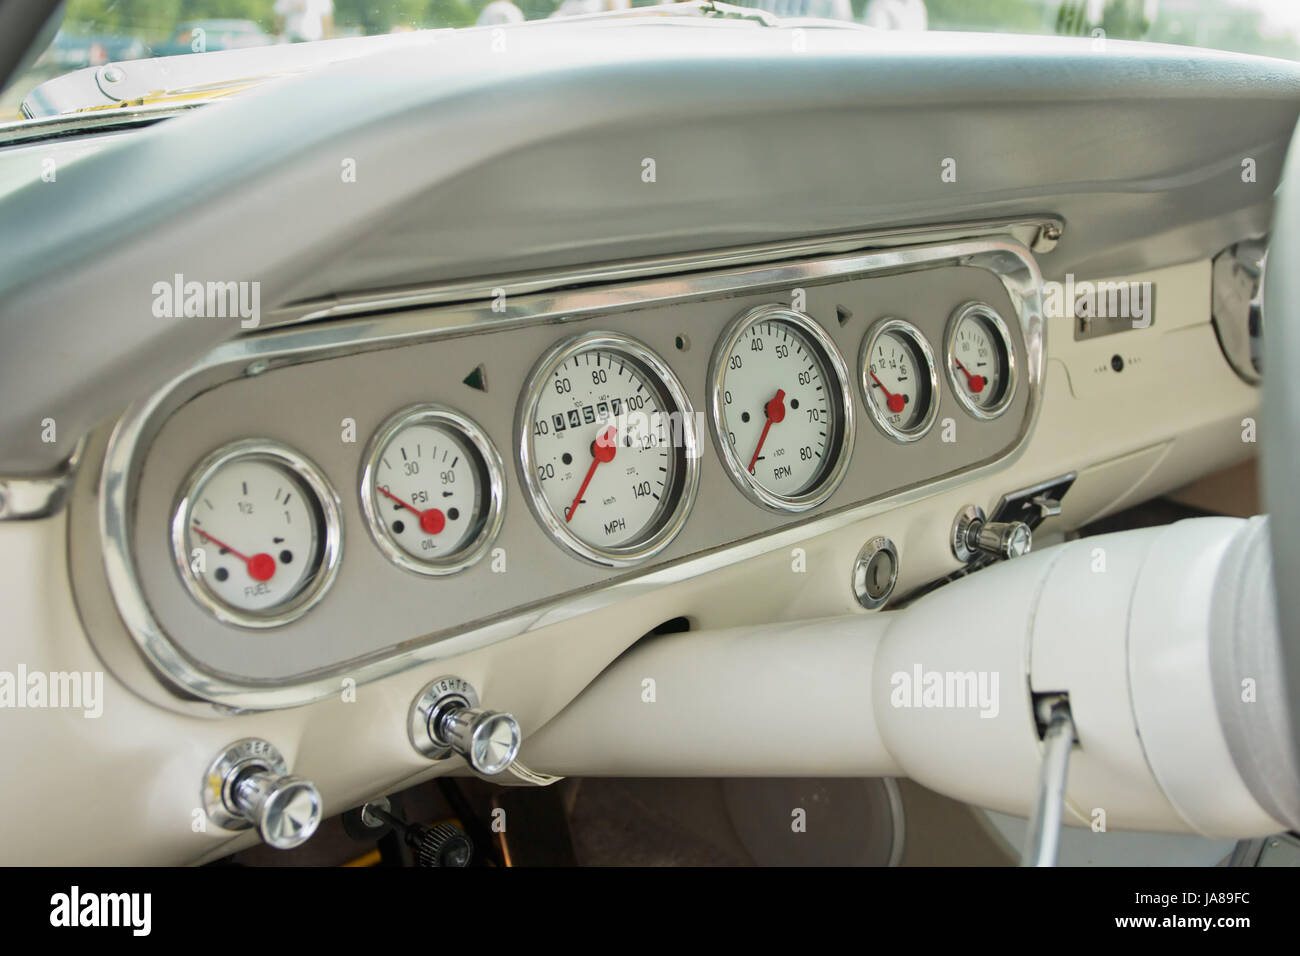 Dashboard Car Automobile Vehicle Means Of Travel Motor - Car image sign of dashboardcar dashboard icons stock photospictures royalty free car